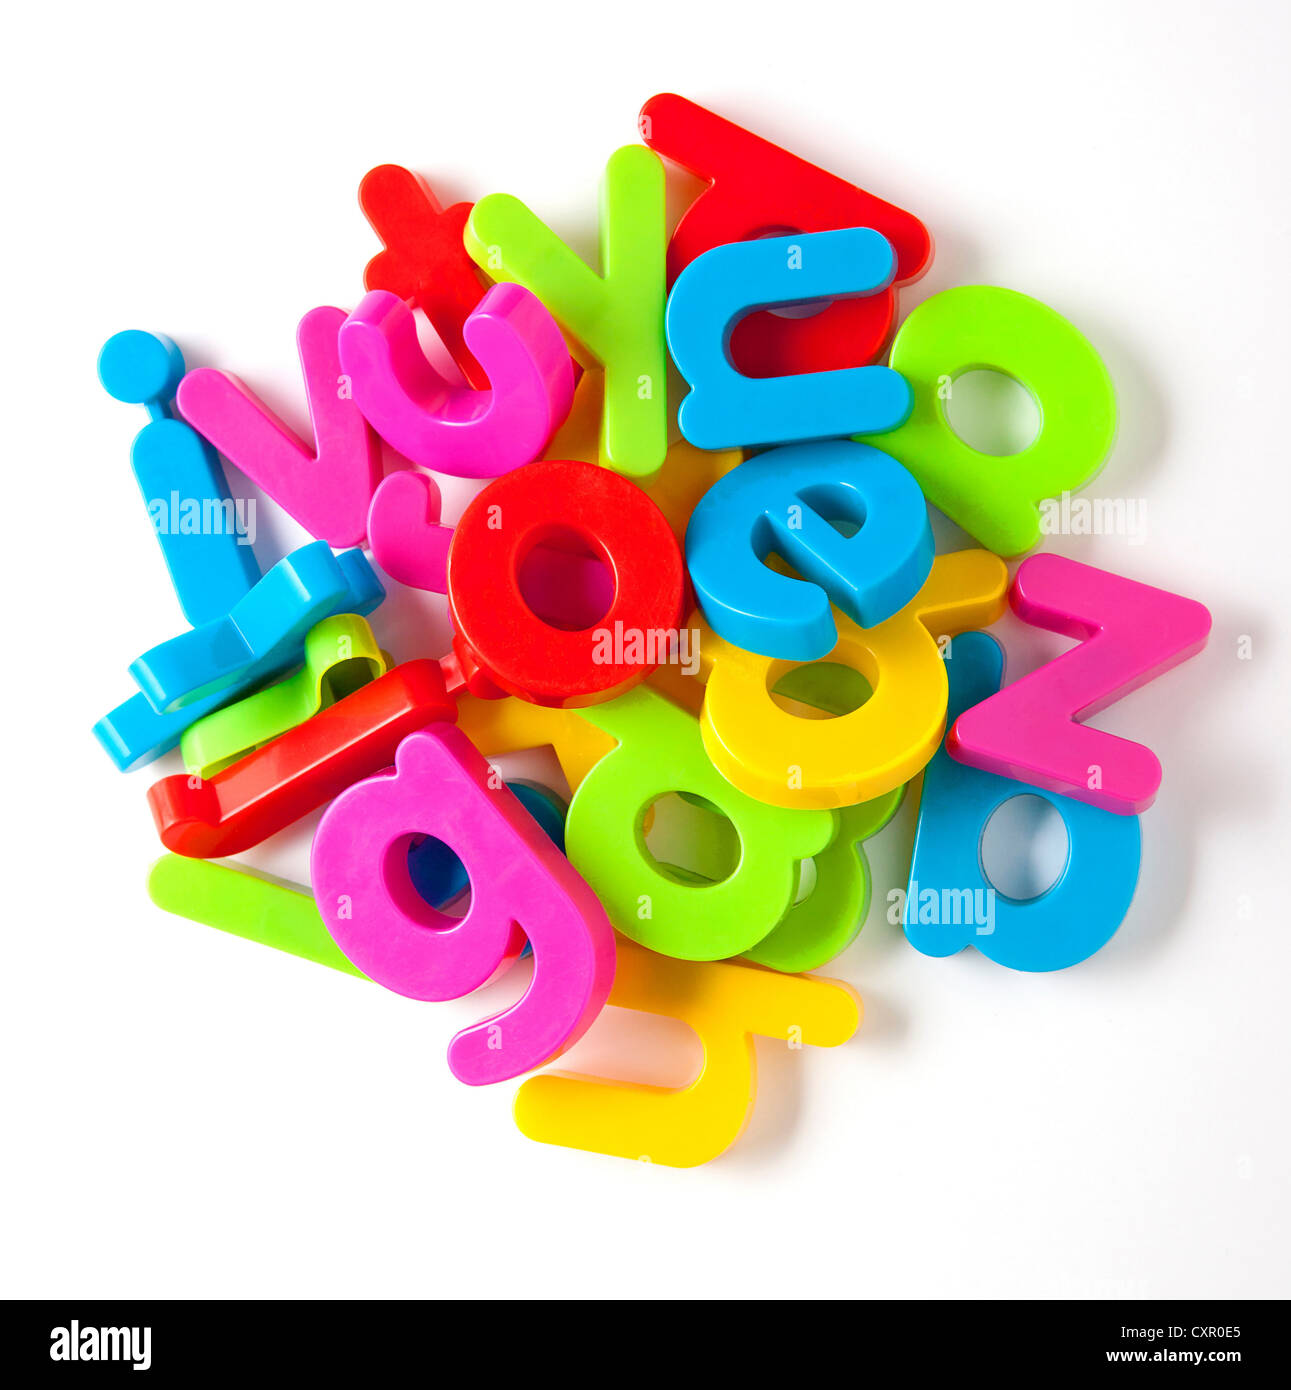 Alphabet fridge magnets in a pile - Stock Image